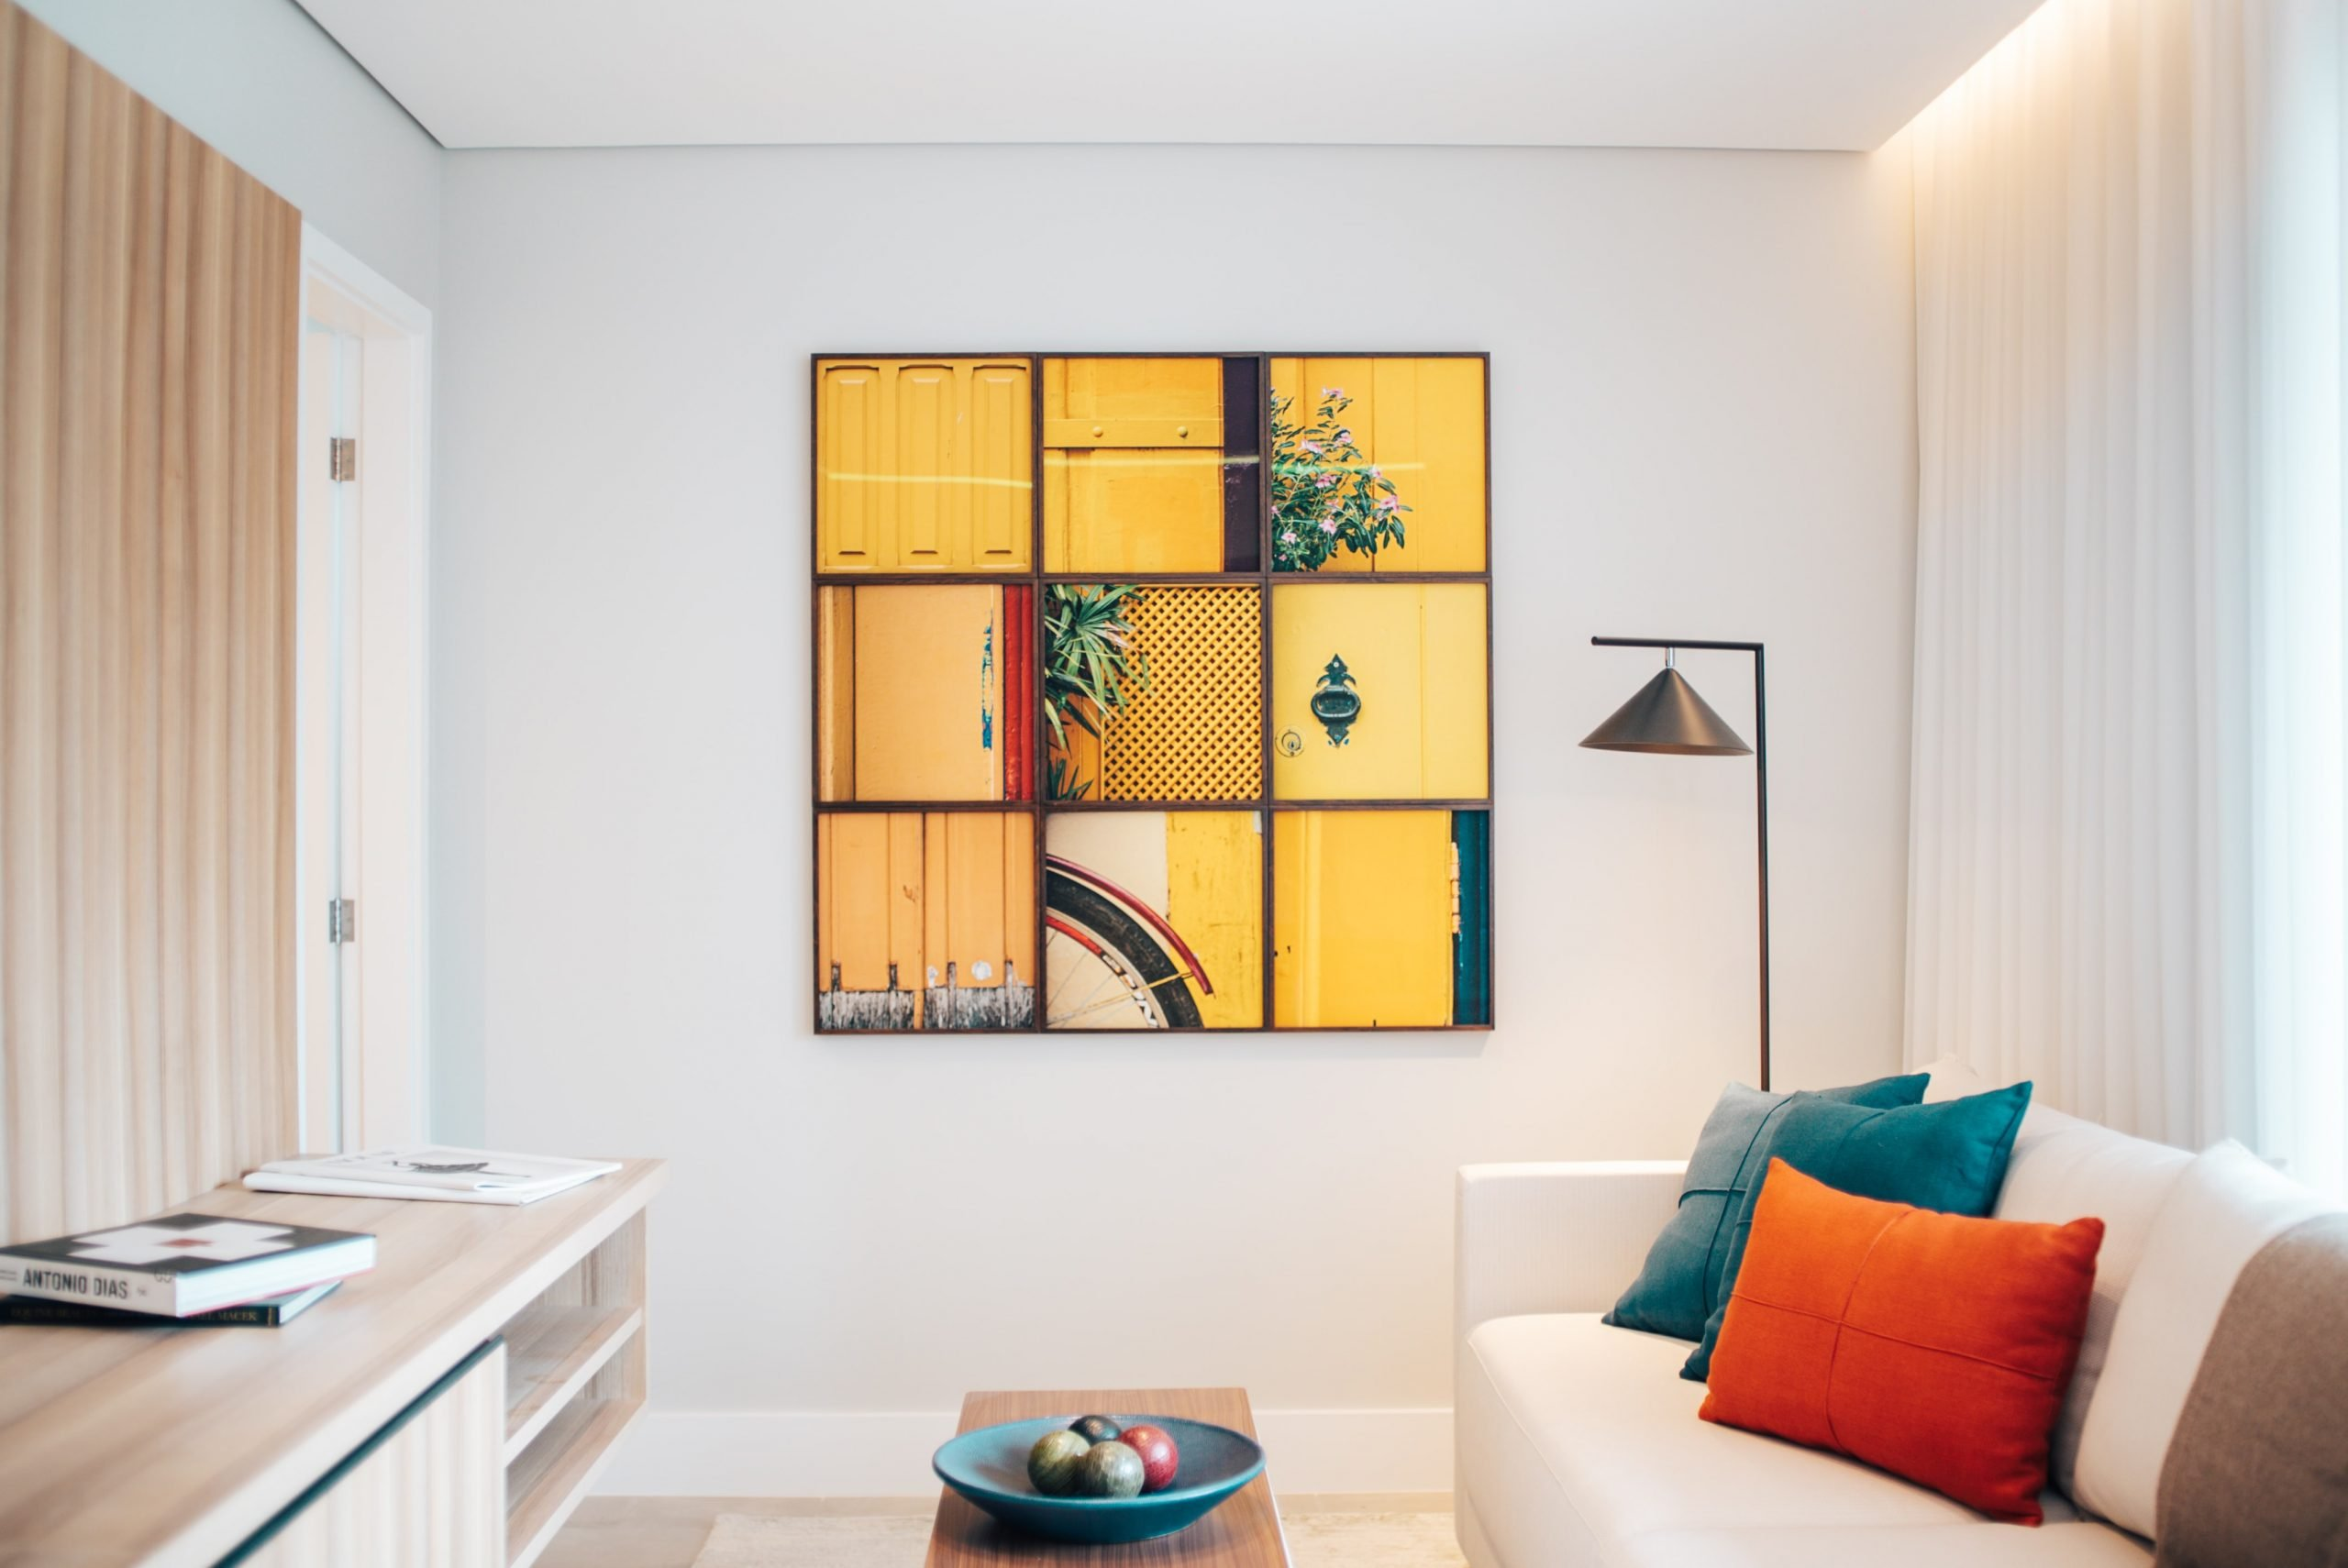 A room with a couch and art on the wall